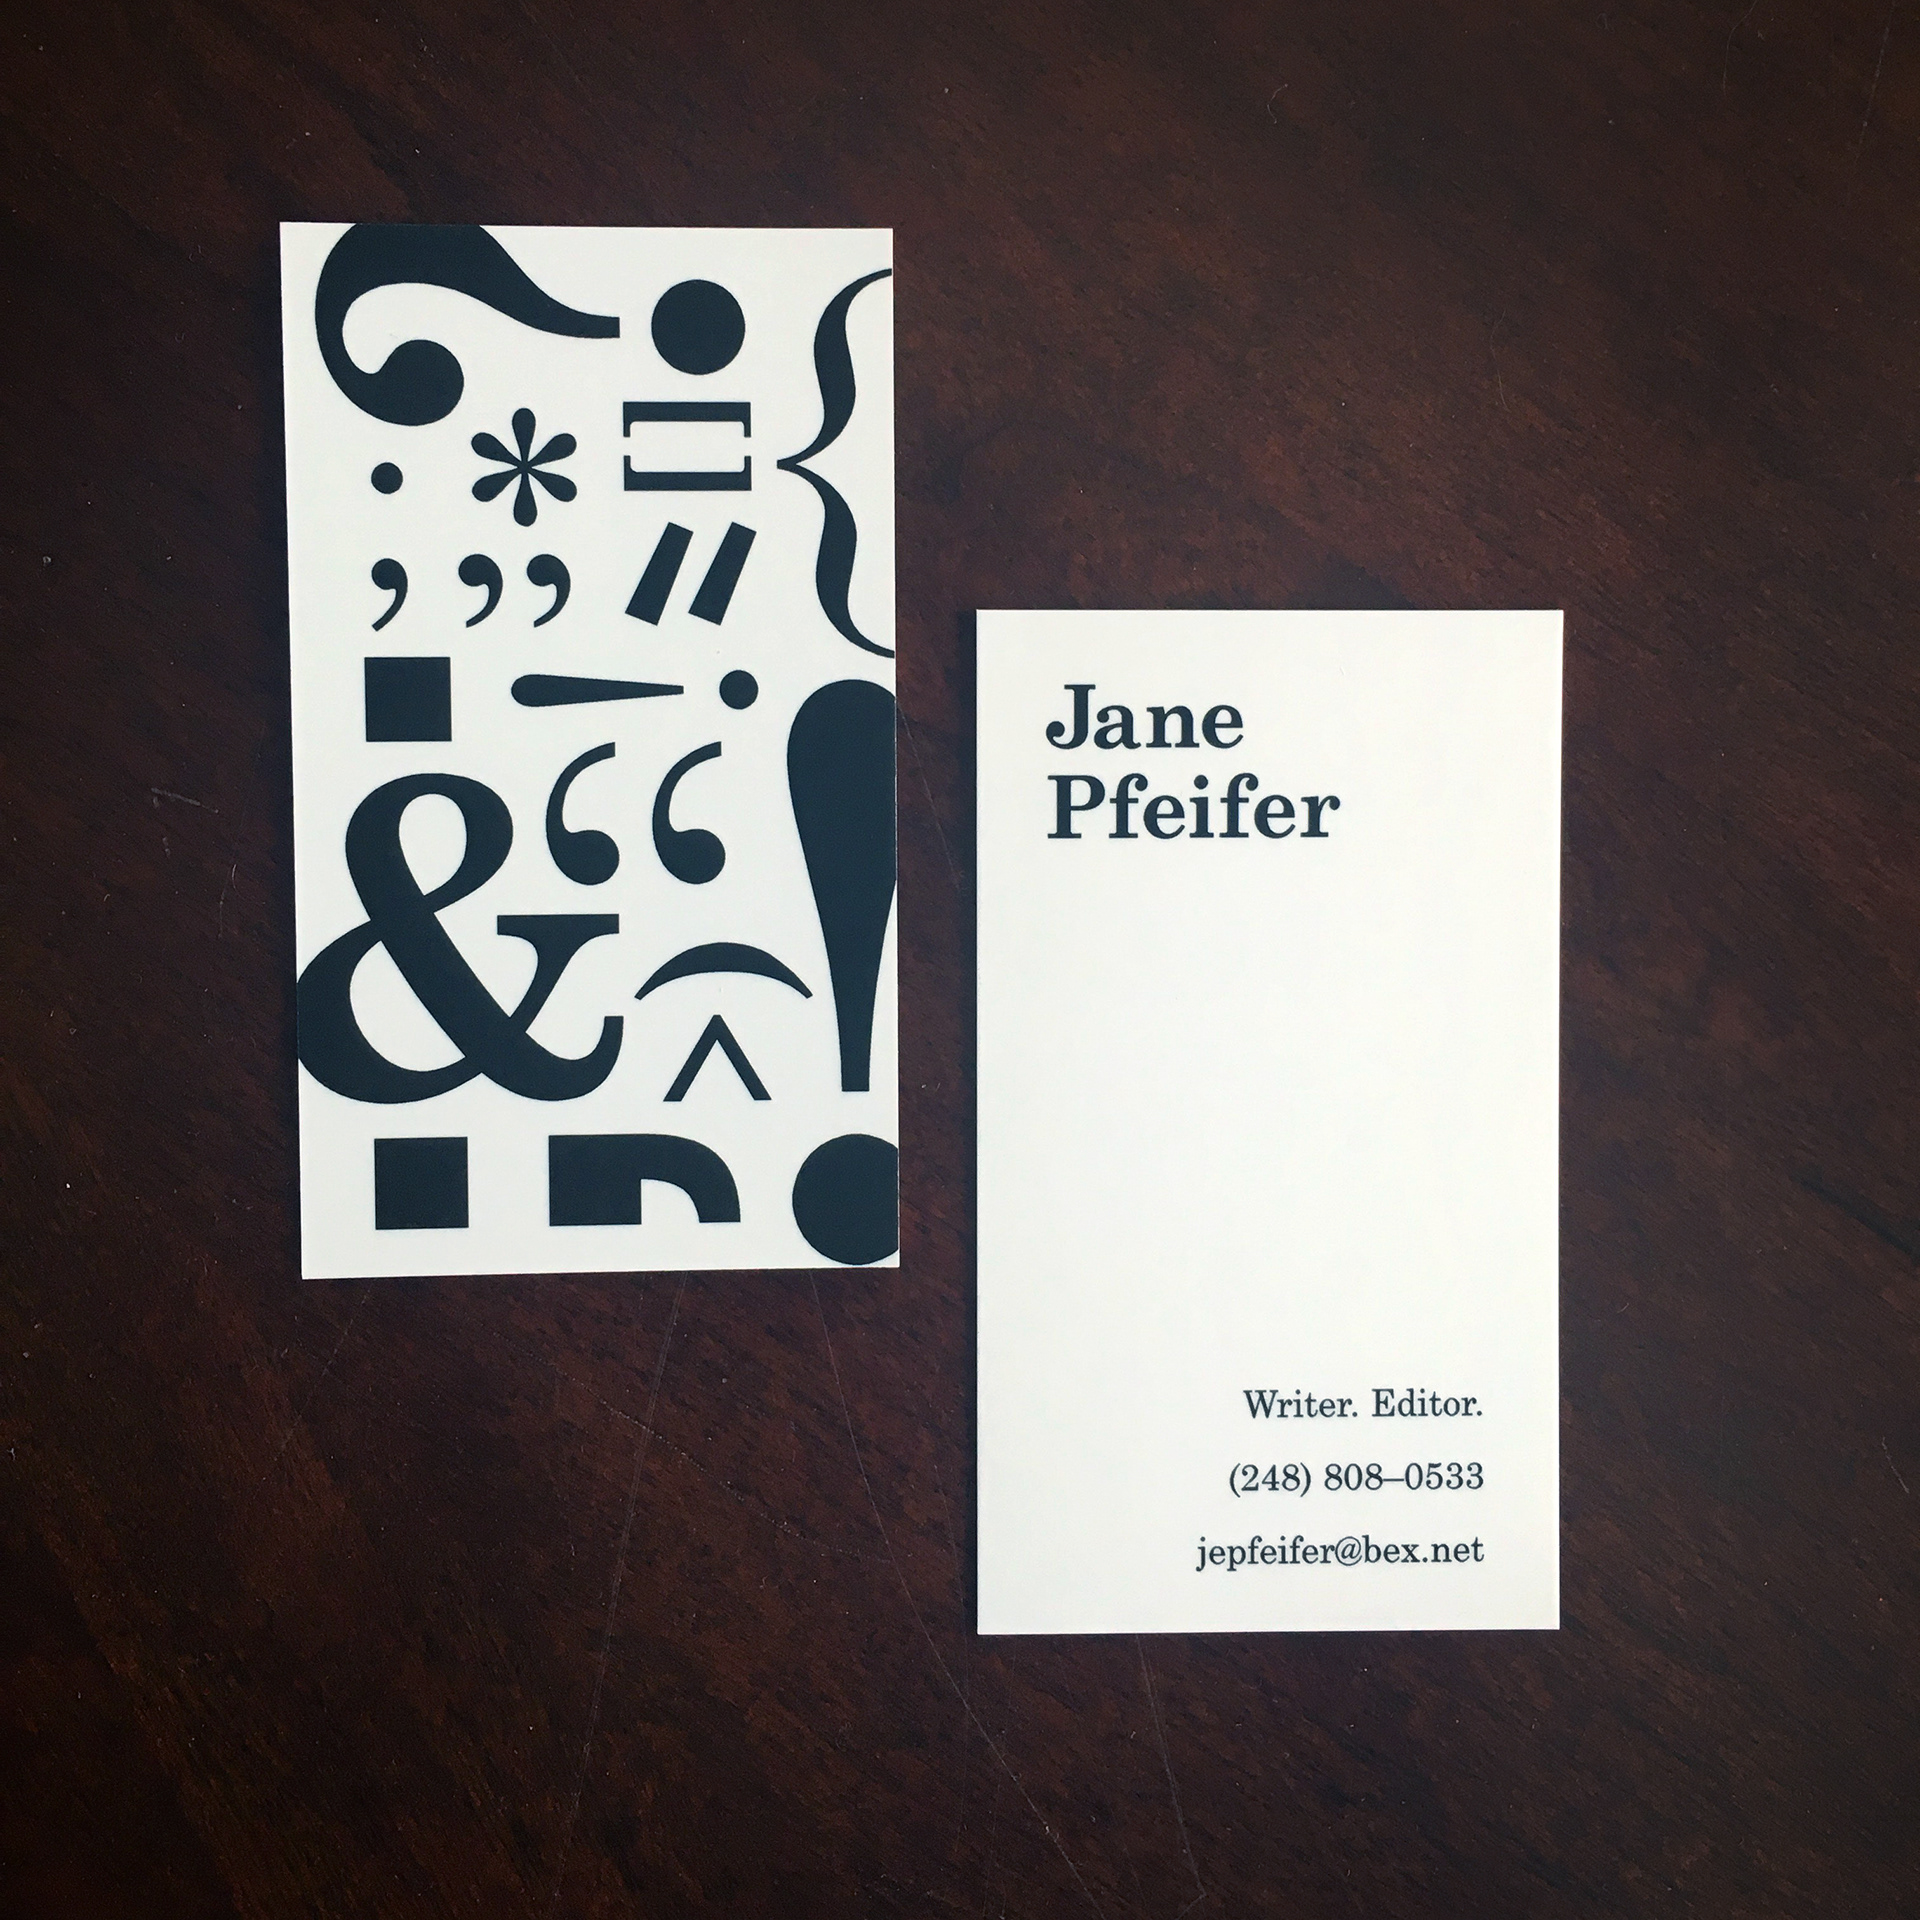 Alyssa Warner - Jane Pfeifer Business Cards